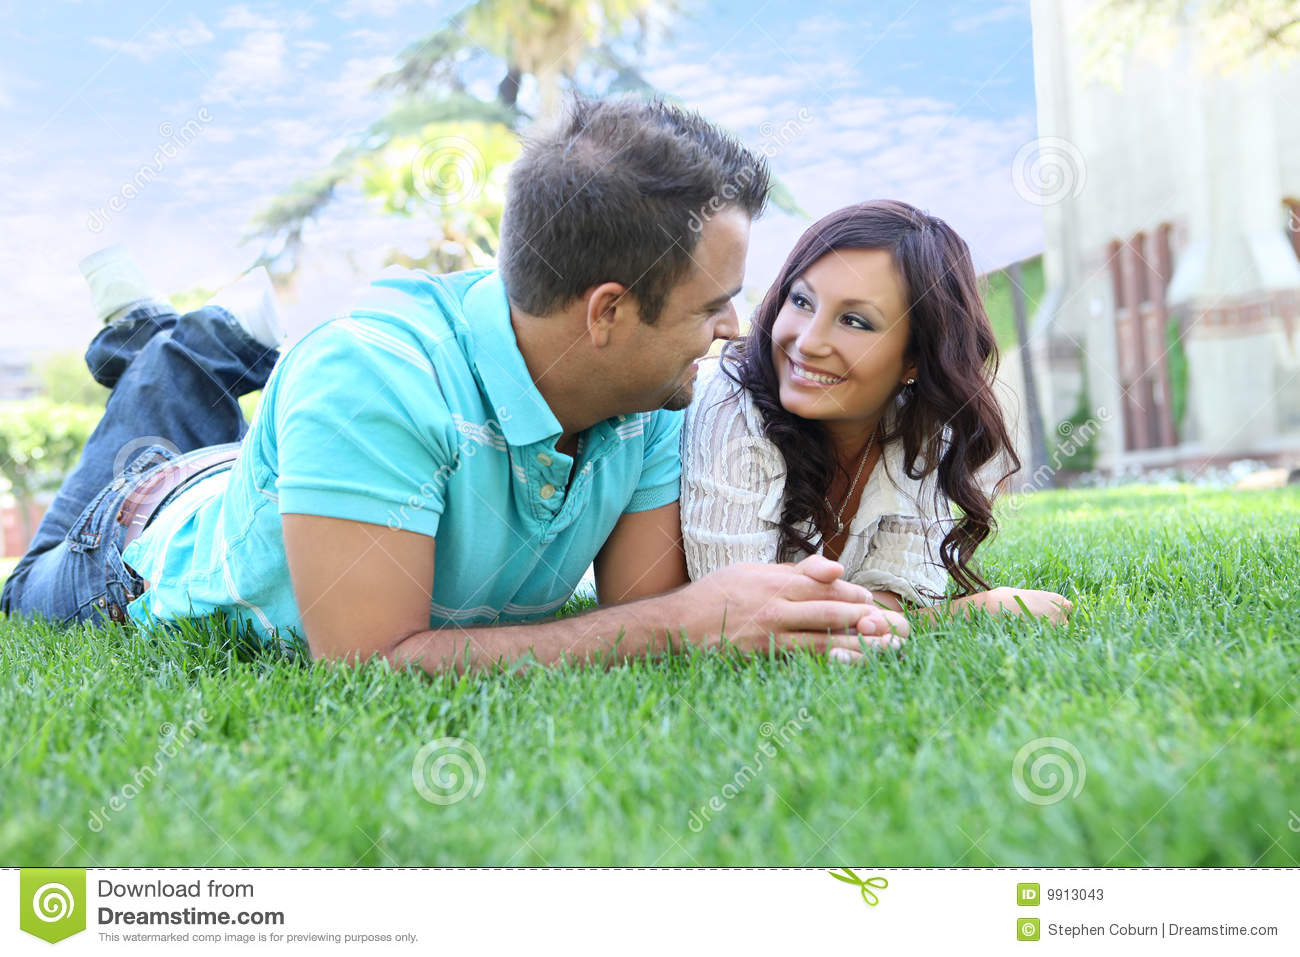 Couples attrayants sur l herbe